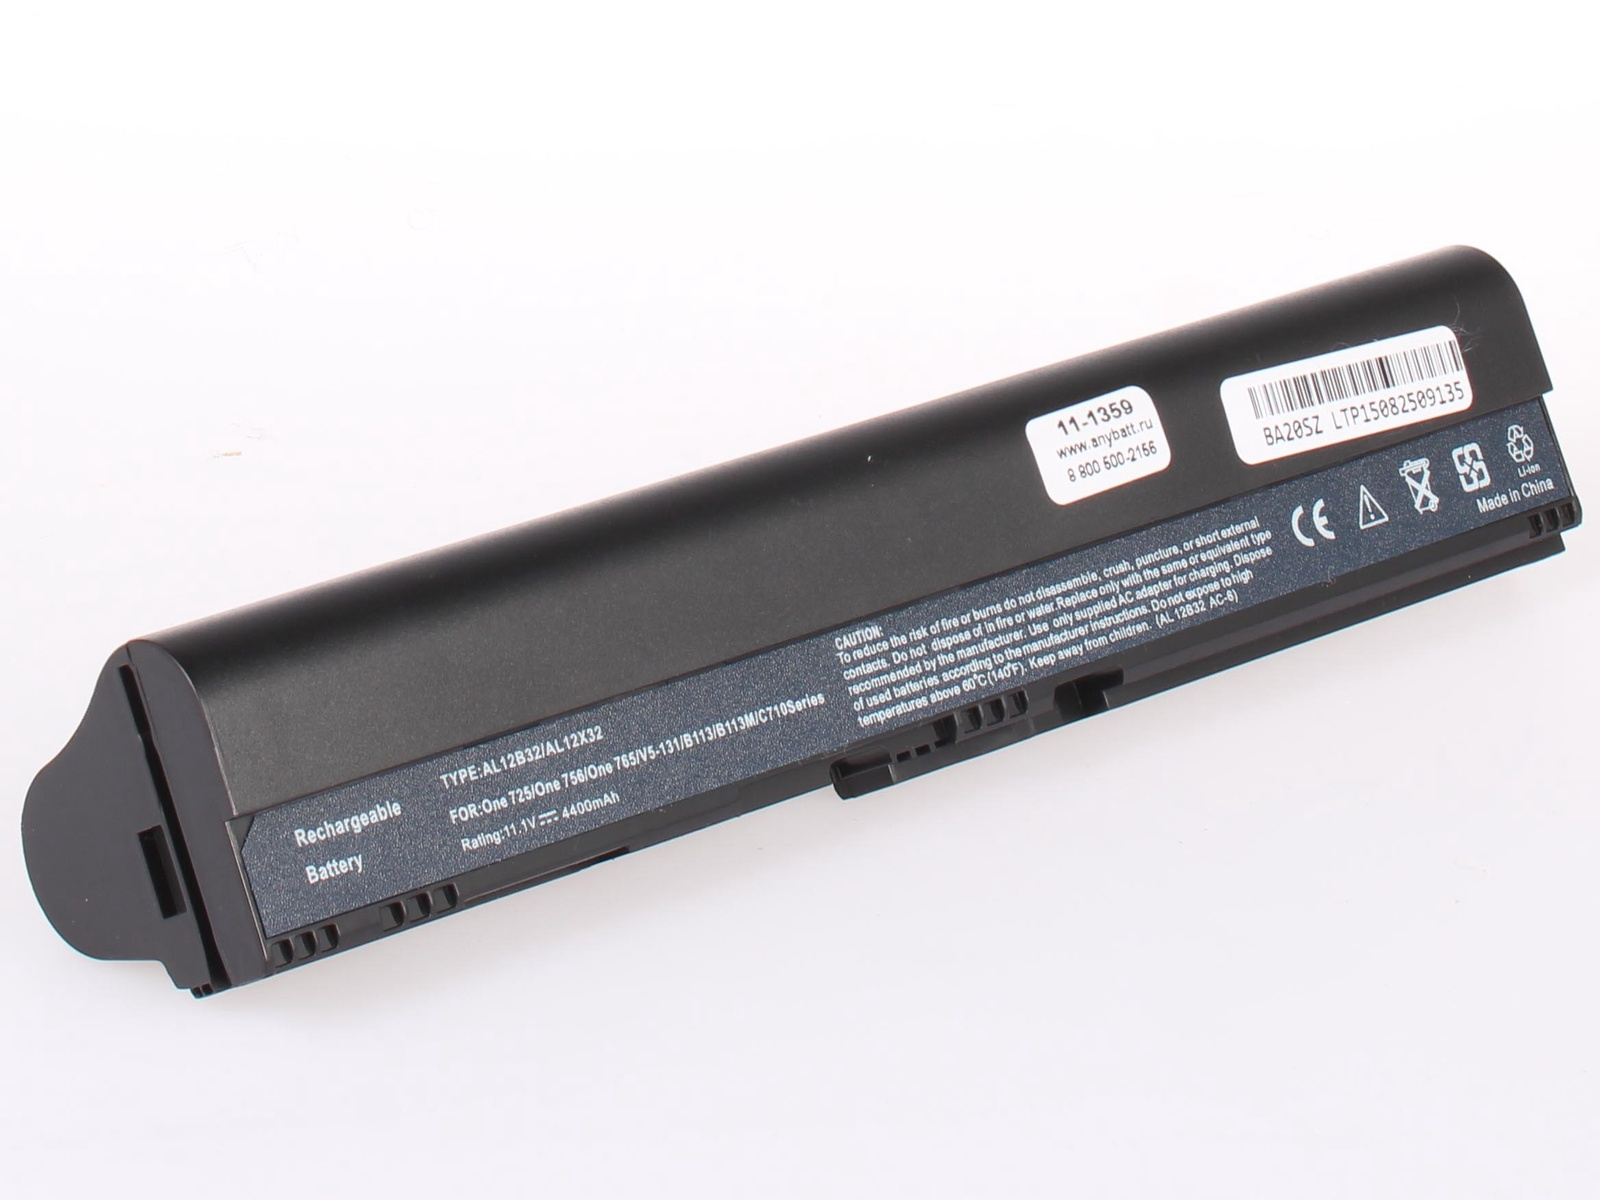 Аккумулятор для ноутбука AnyBatt для Acer Aspire V5-571-323b4G32Ma, Aspire V5-571-323b4G32Makk, Aspire One AO725-C6Skk, Aspire One 756-877B, Aspire One AO756-84Skk, Aspire V5-171-53334G50A, Aspire V5-431G free shipping for acer aspire v5 571 v5 571p v5 571pgb v5 531pg ms2361 assembly touch screen and display not with frame